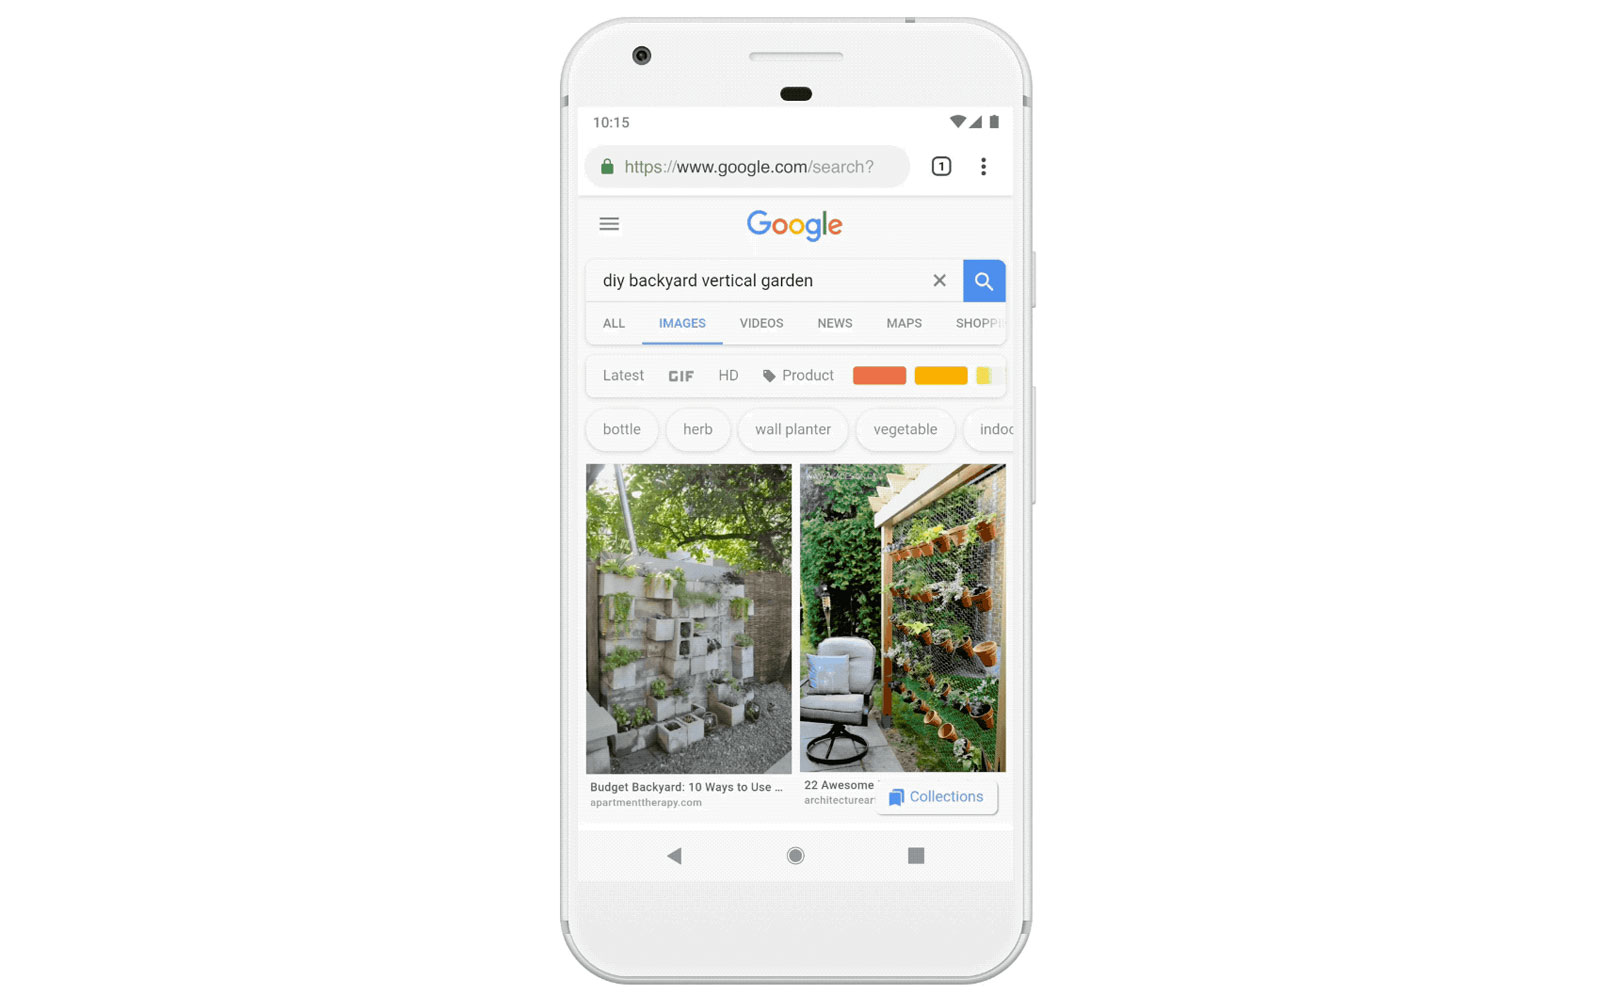 Google Lens is coming to Image search results